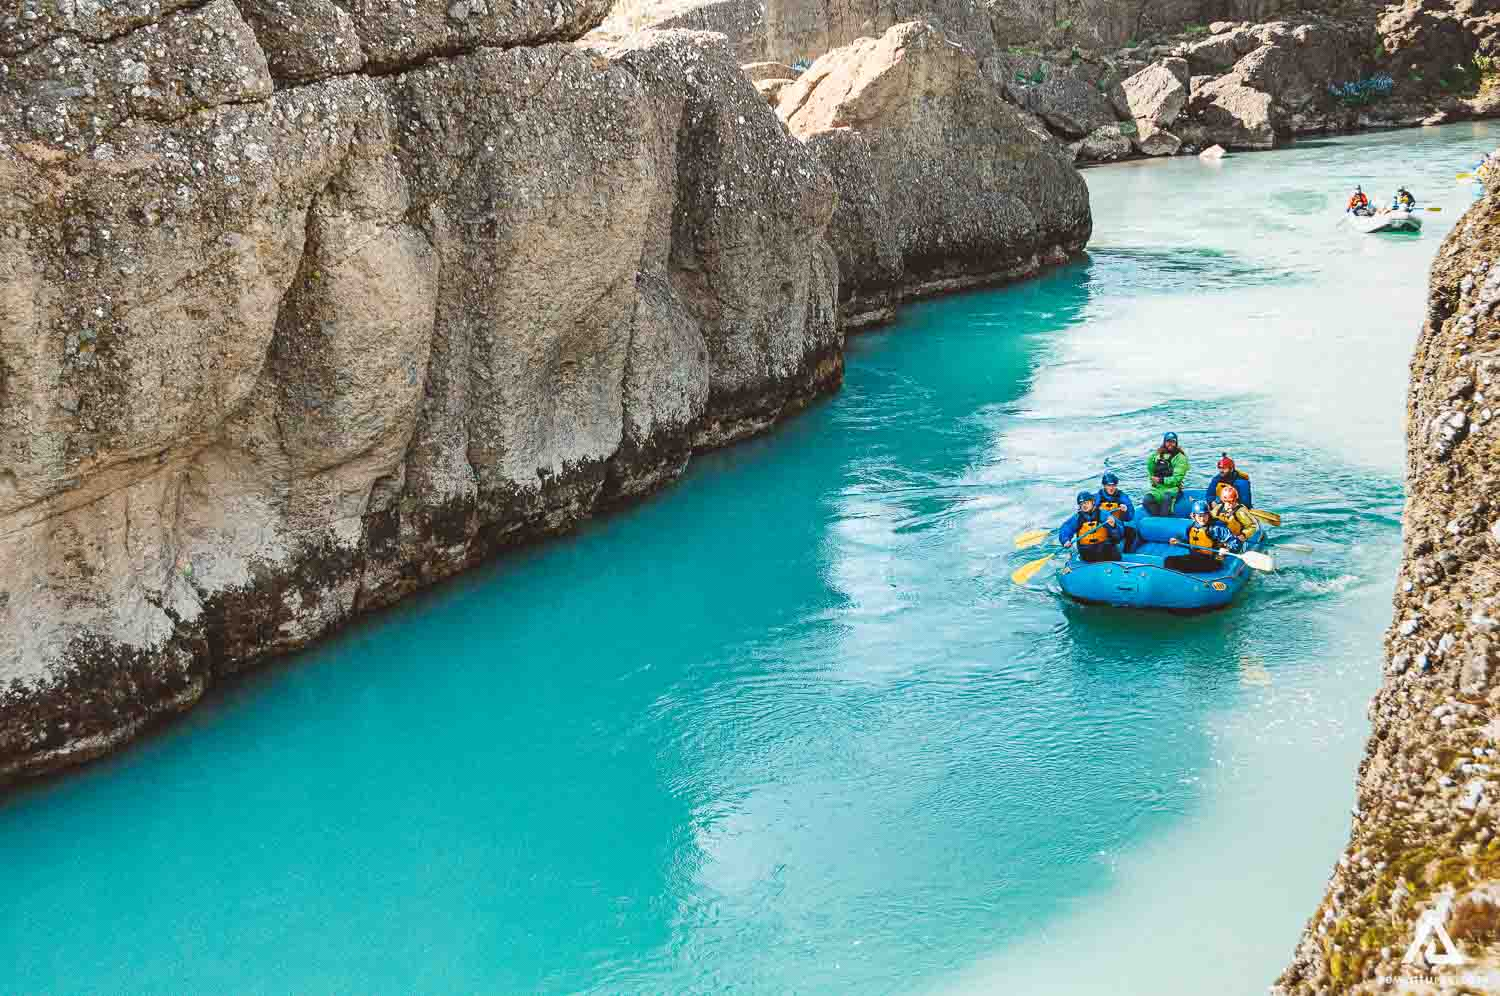 People Are Rafting On The River Between The Rocks